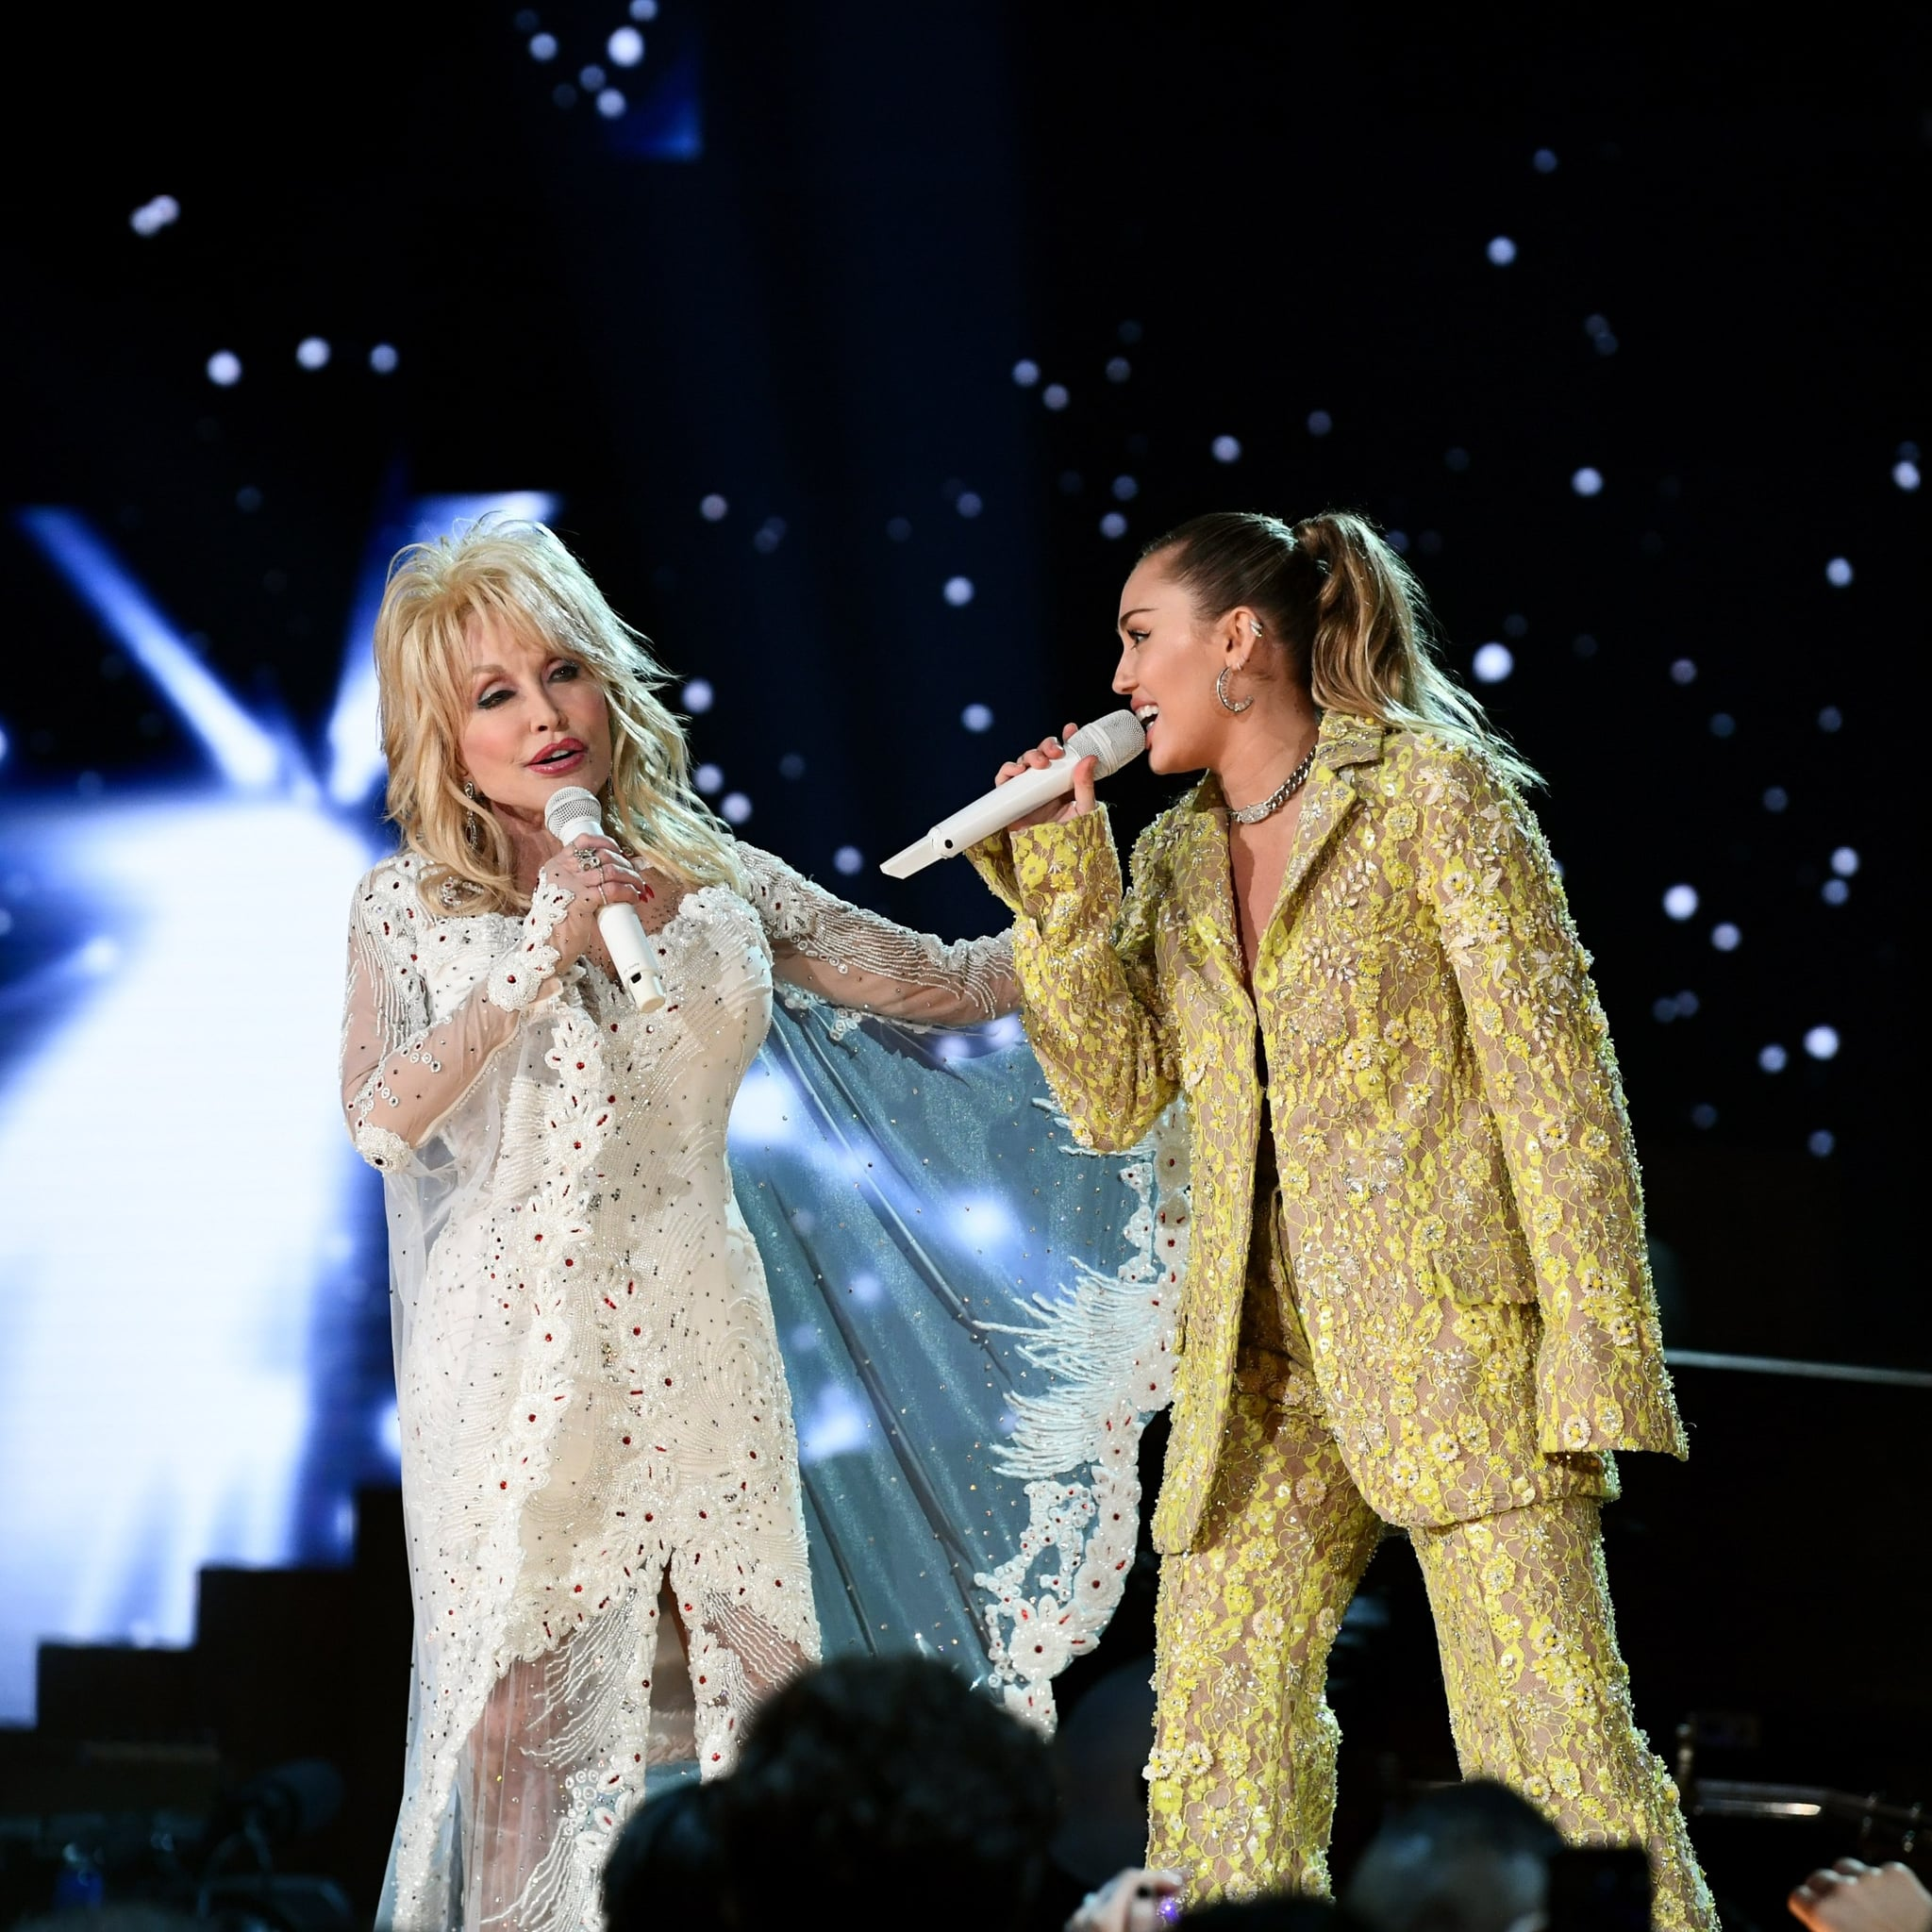 Miley Cyrus Covers Of Jolene By Dolly Parton Popsugar Entertainment